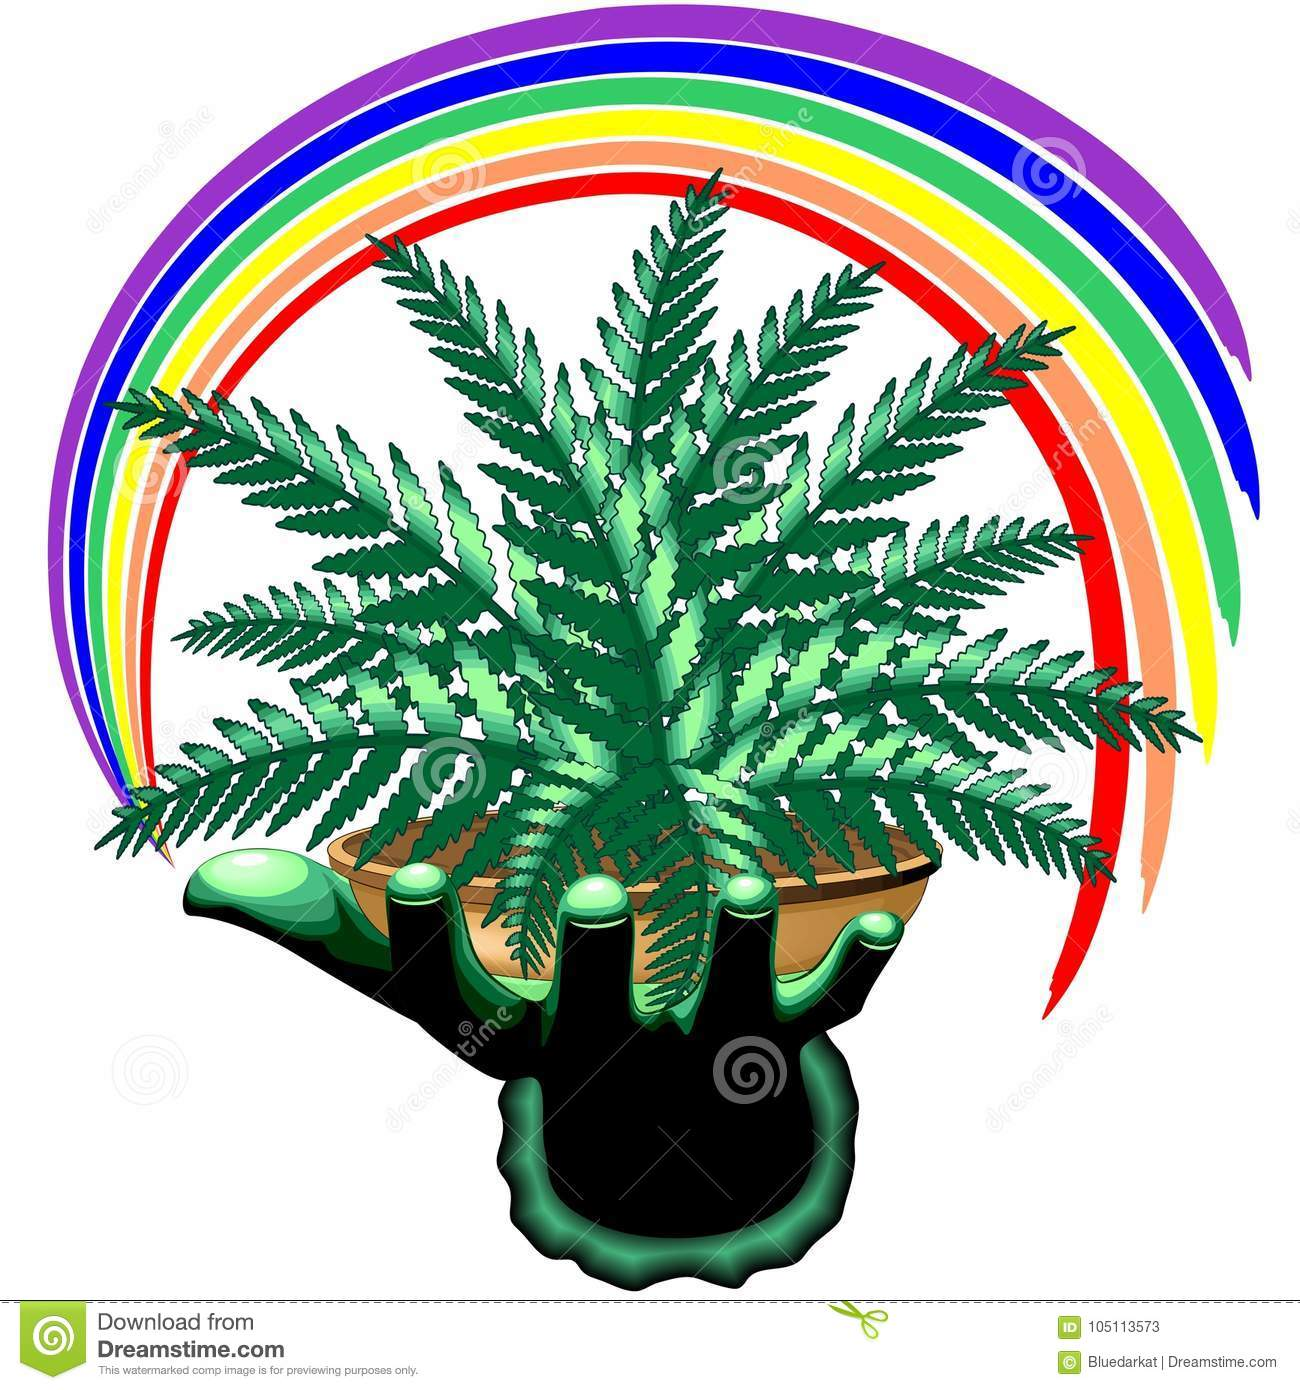 Ferns Plant And Rainbow On Green Hand Stock Vector ... on rainbow eucalyptus plant, rainbow hibiscus plant, rainbow rose plant, rainbow iris plant, rainbow cactus plant, rainbow bleeding heart plant, rainbow bamboo plant, rainbow fern care, rainbow orchid plant, rainbow jasmine plant, rainbow leaf plant, rainbow coleus plant, rainbow flower plant, red spiky plant, indian tobacco plant, rainbow moss, rainbow chrysanthemum plant, rainbow strawberry plant, rainbow hyacinth plant, rainbow evergreen plant,